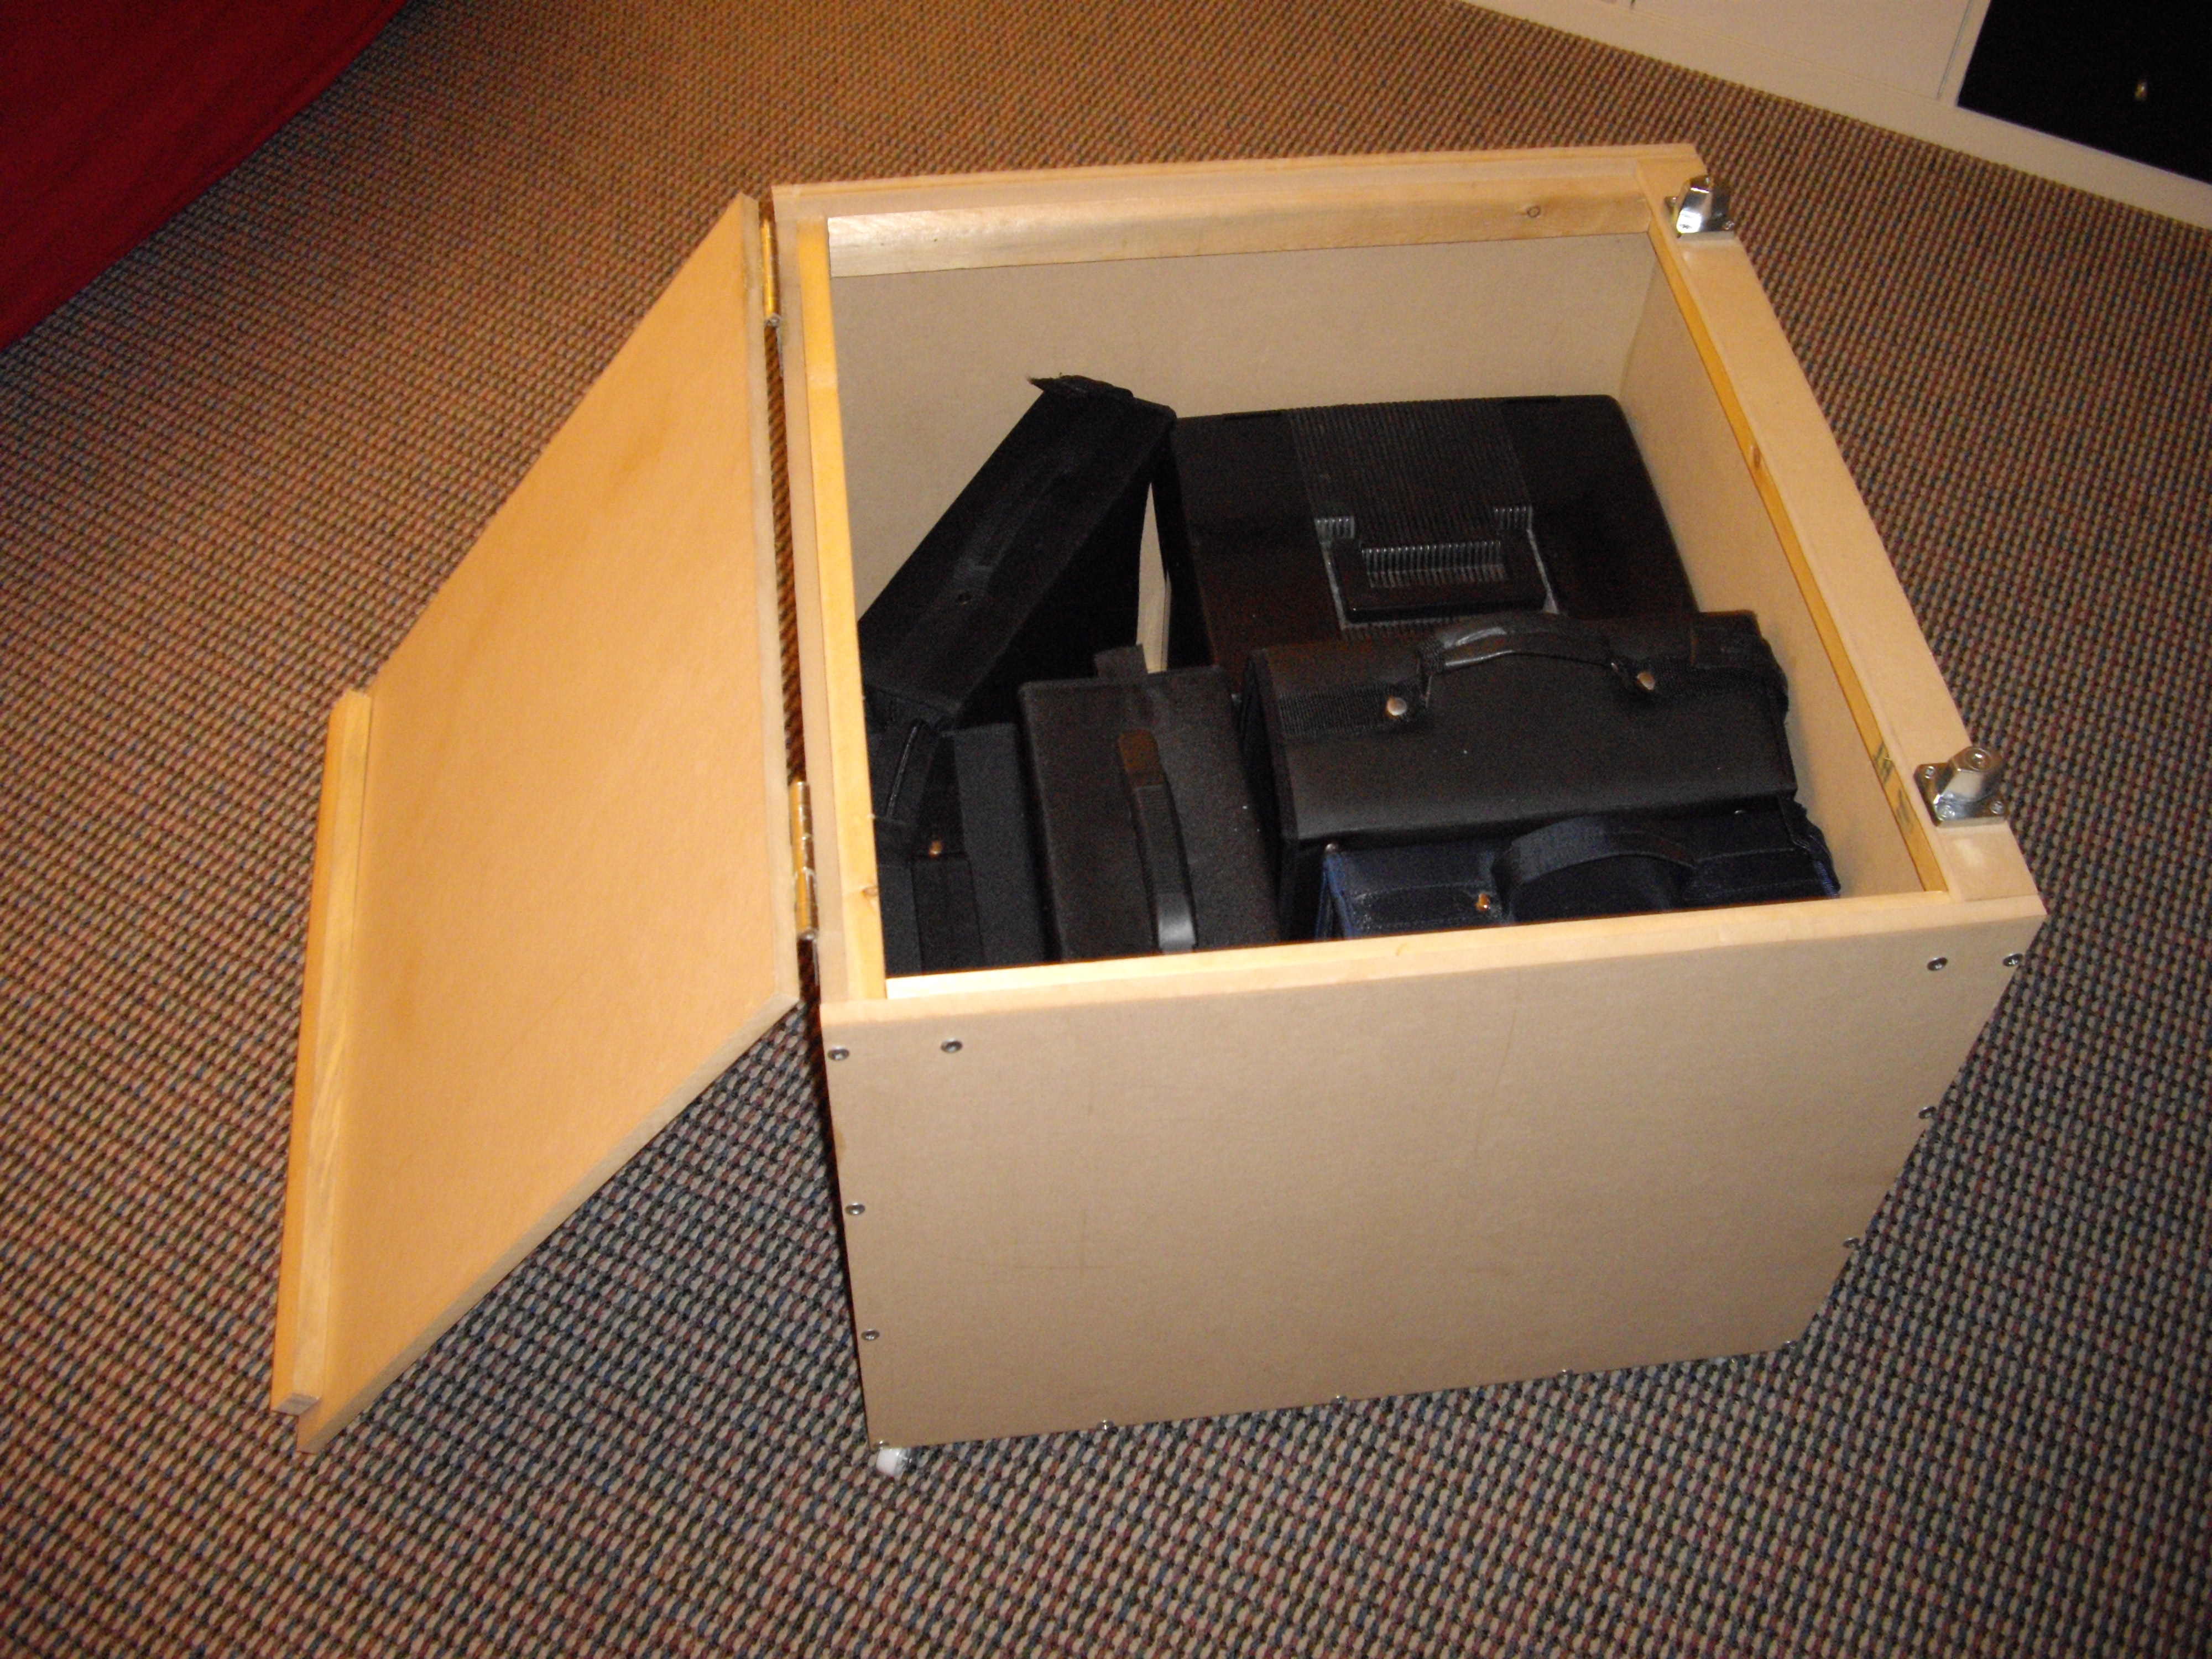 How to Make an Off-Site Backup Storage Container